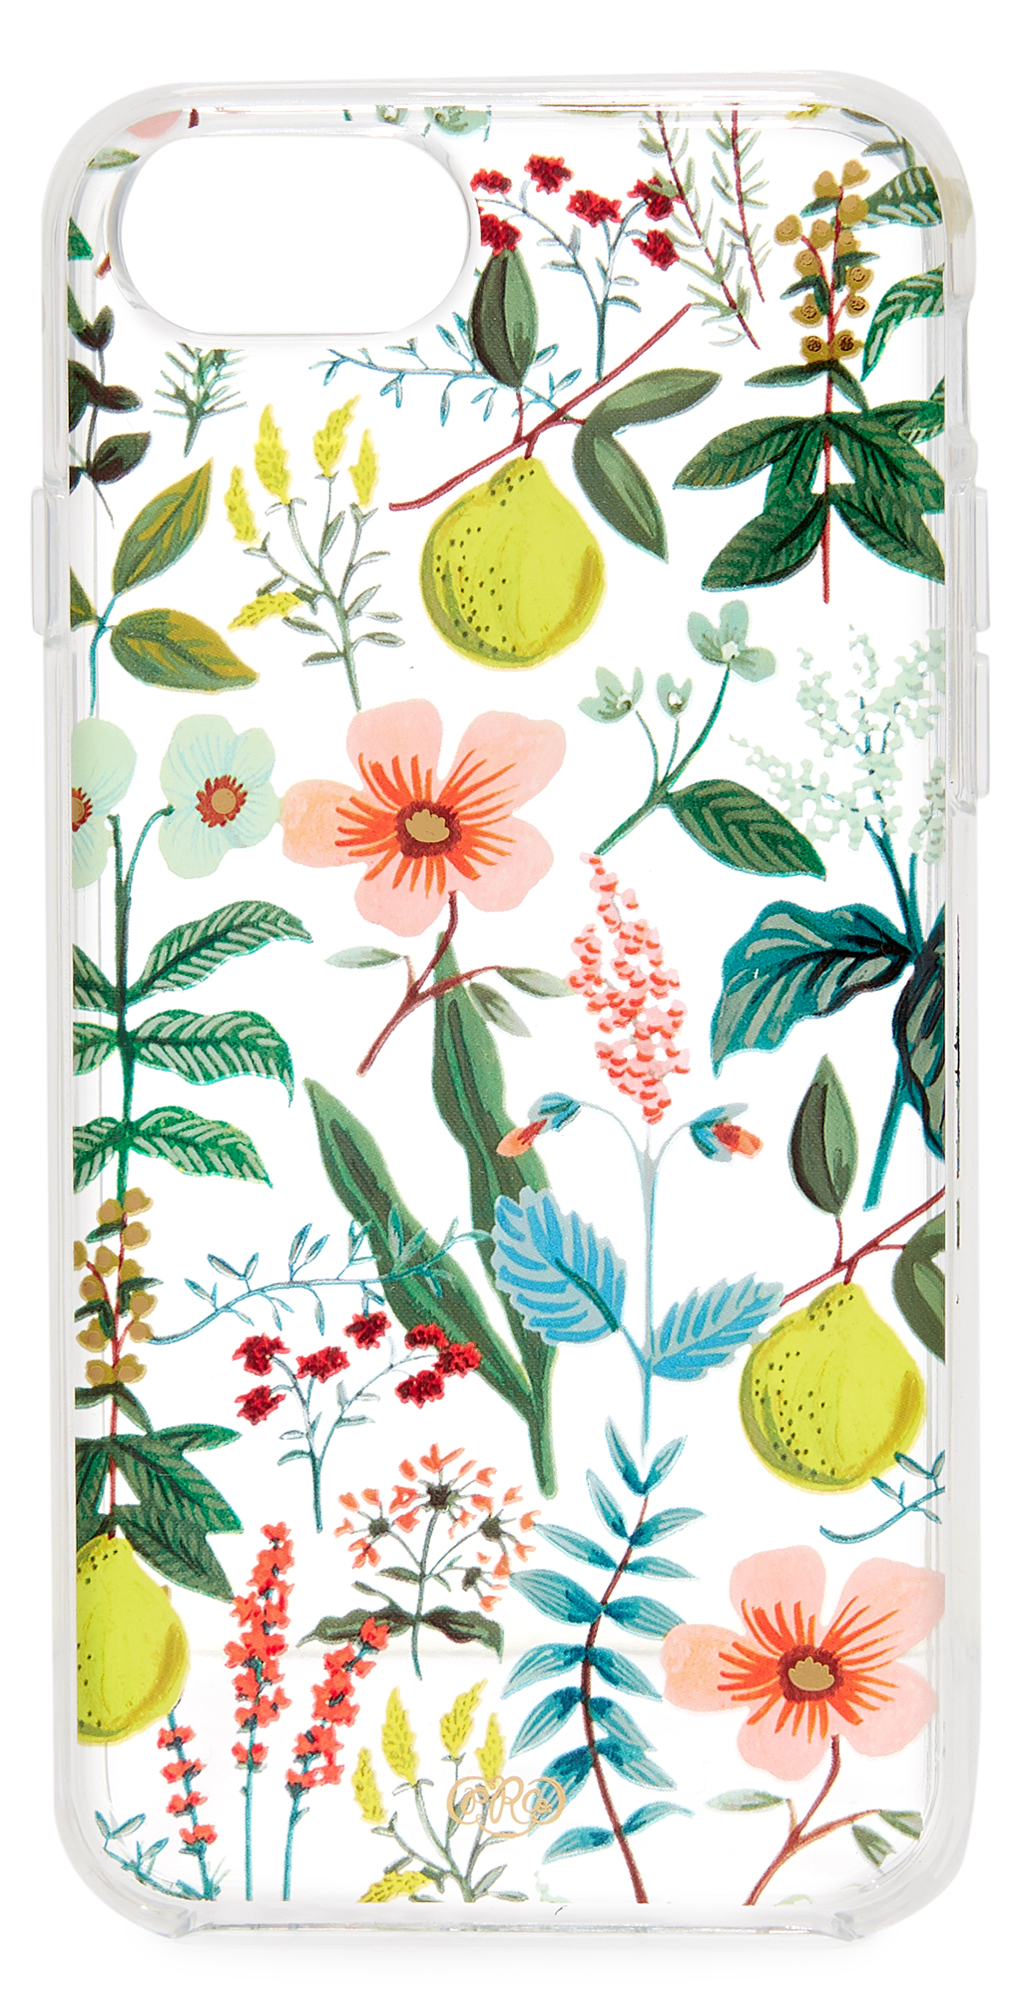 Herb Garden iPhone 6 / 6s / 7 Case Rifle Paper Co